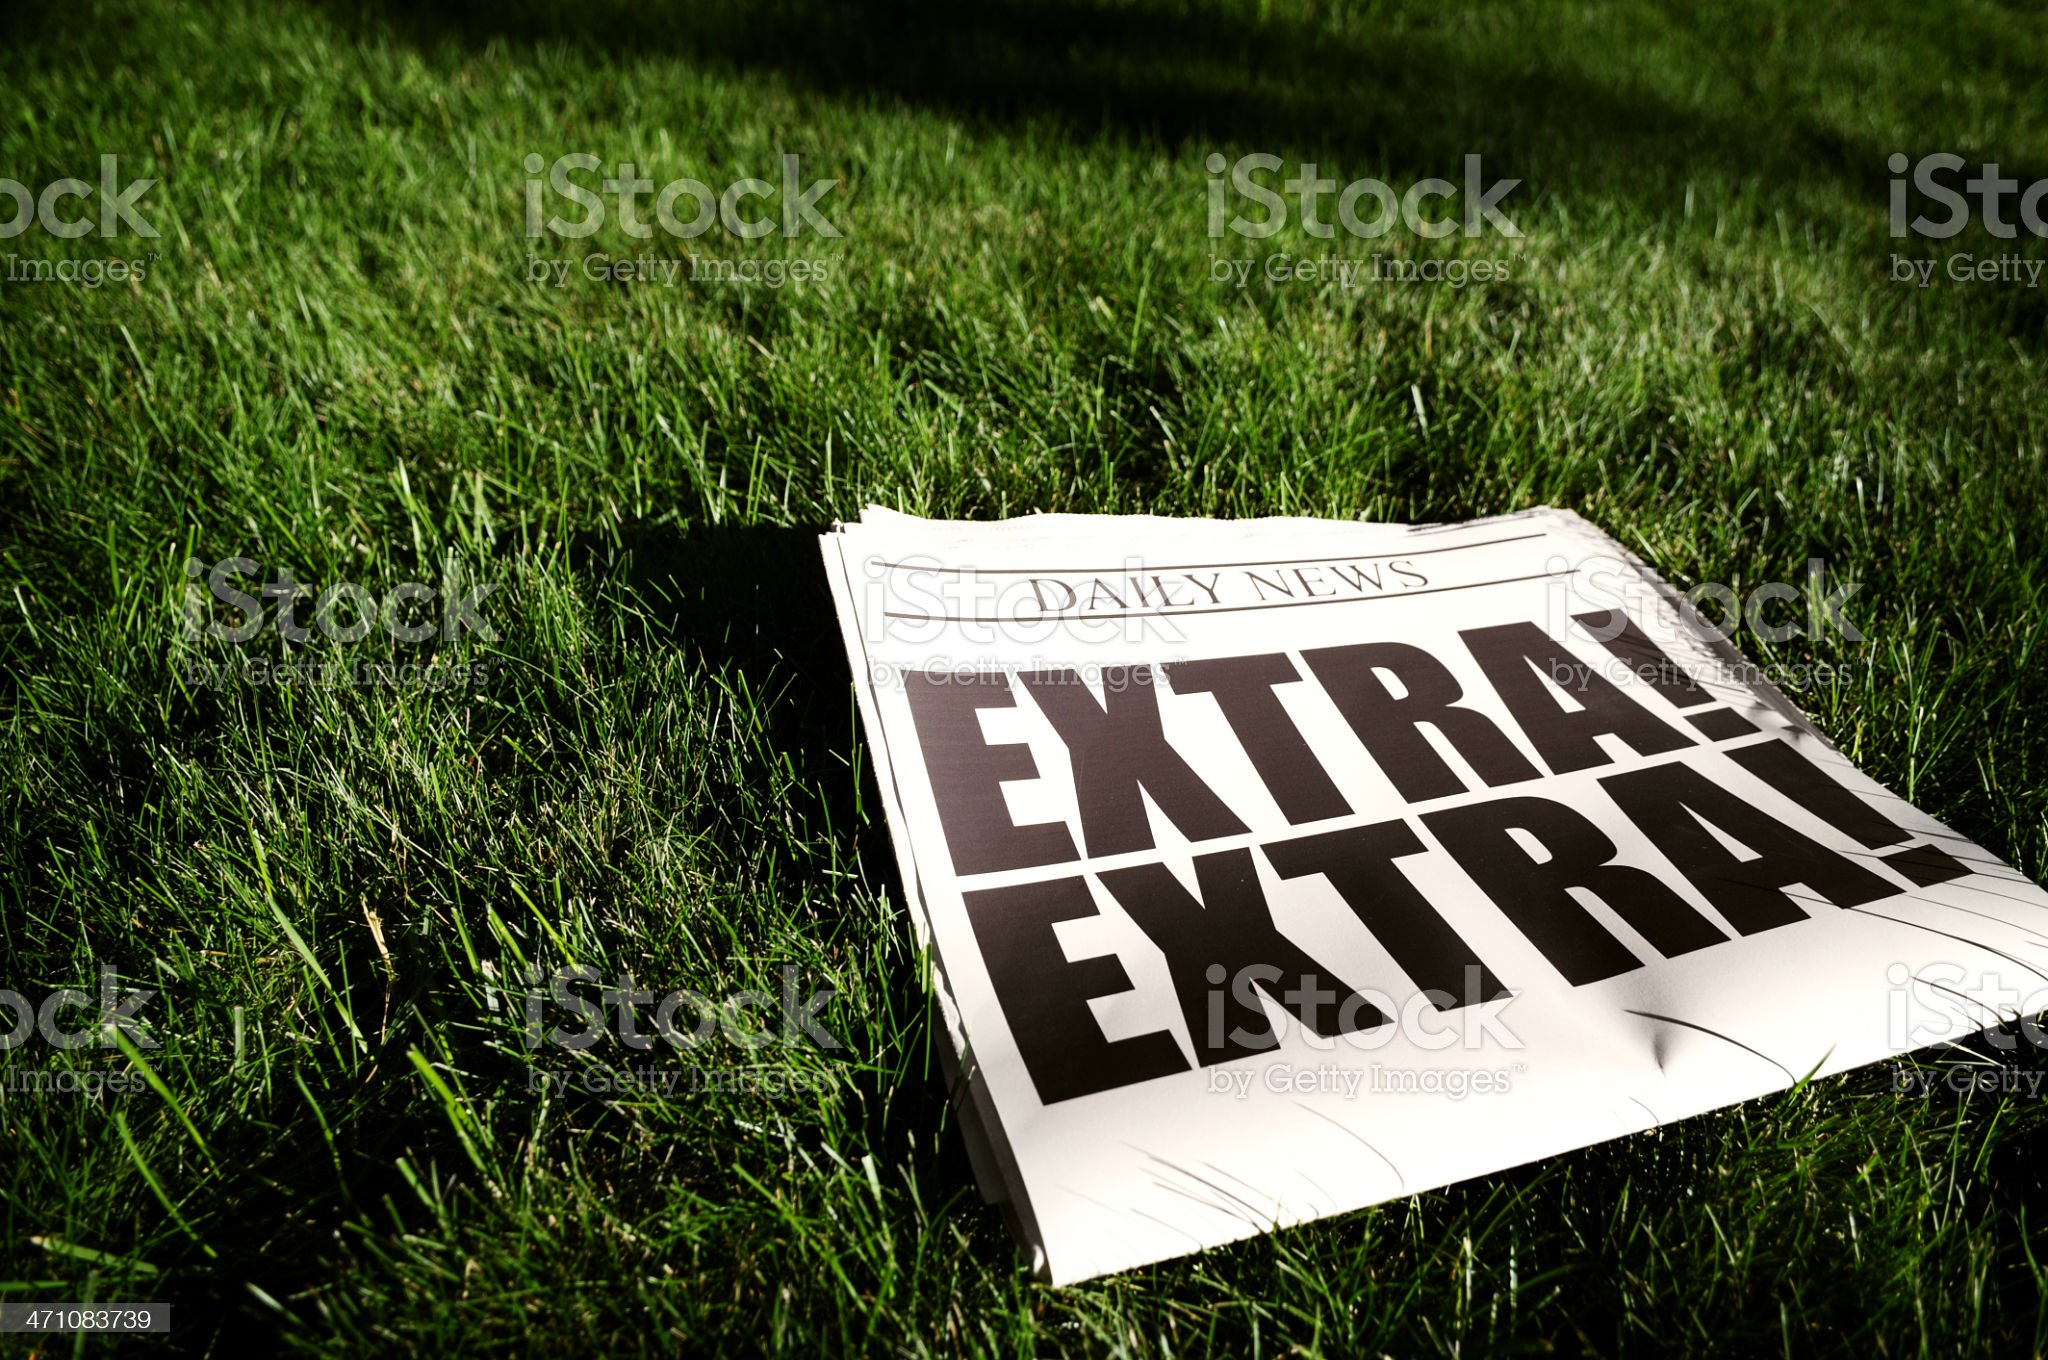 Morning News on Grass royalty-free stock photo